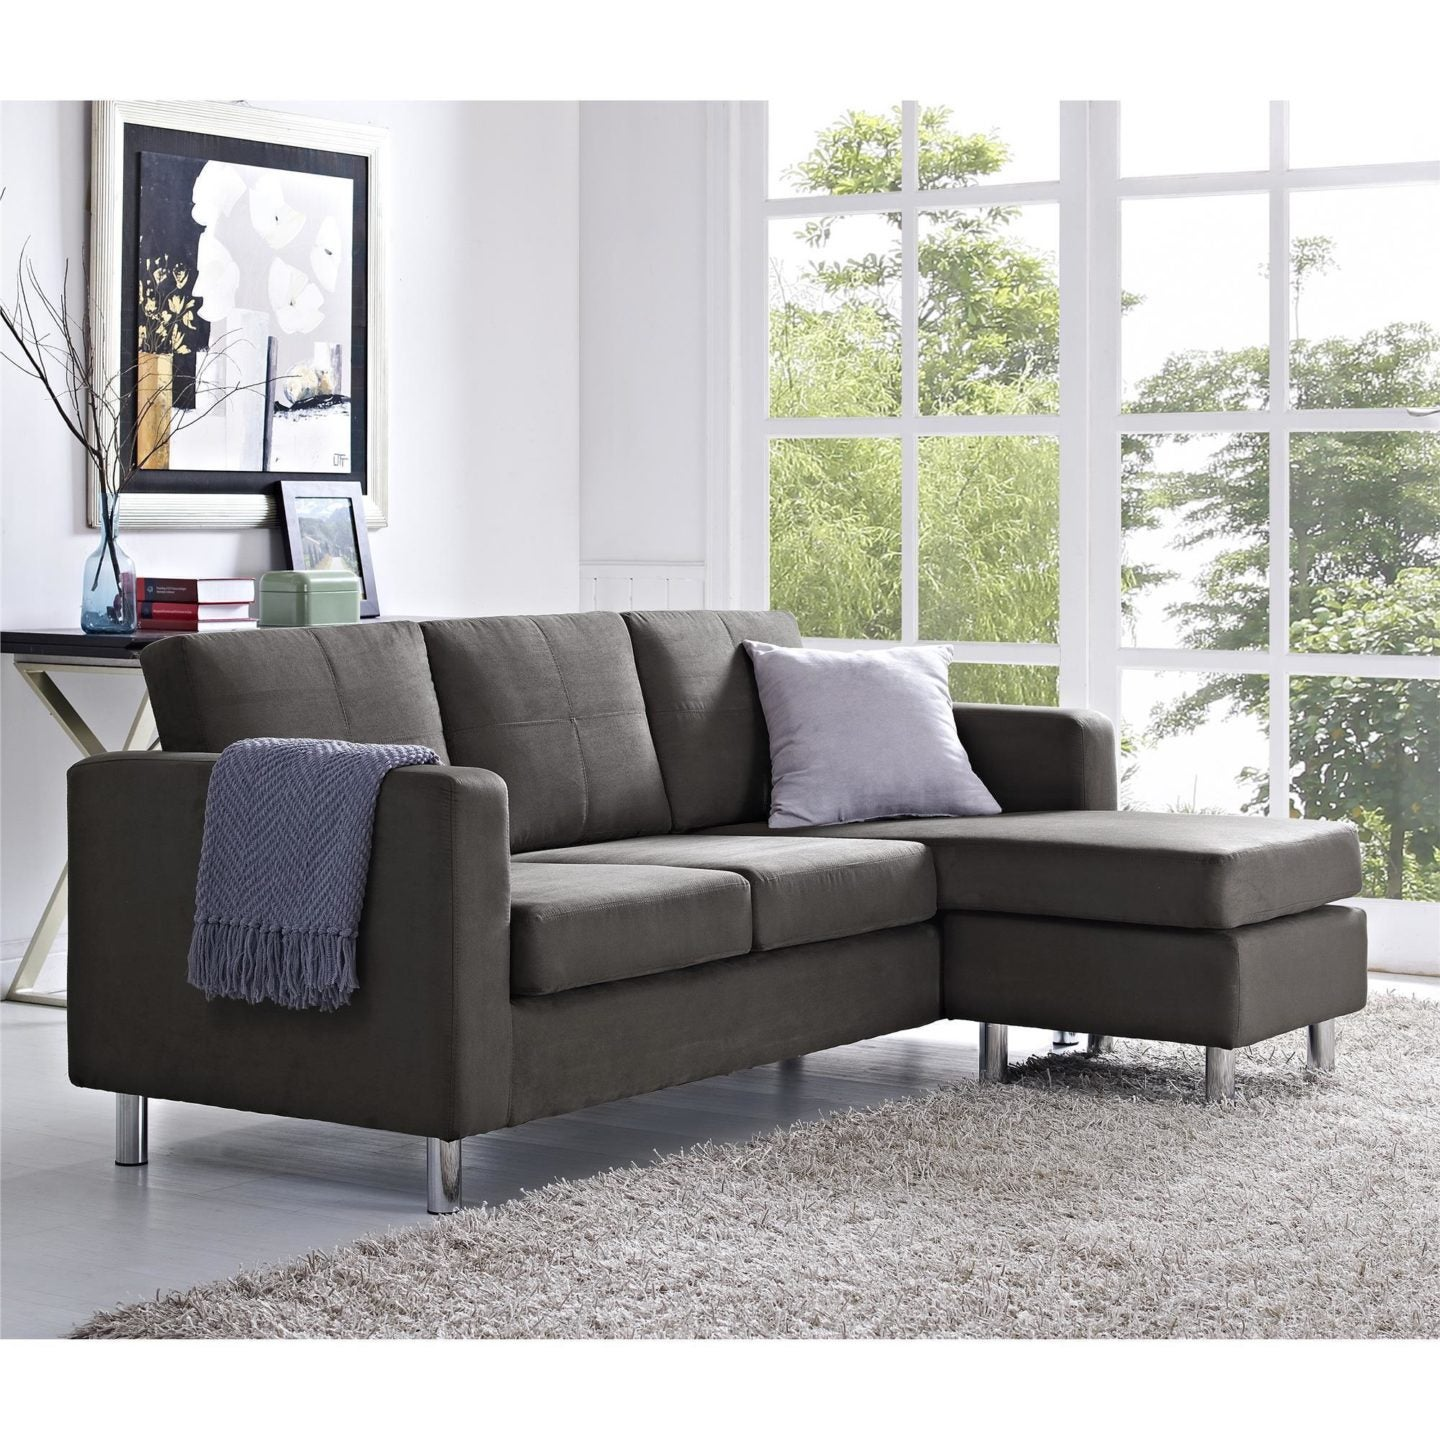 Sectional_Sofa_Repair